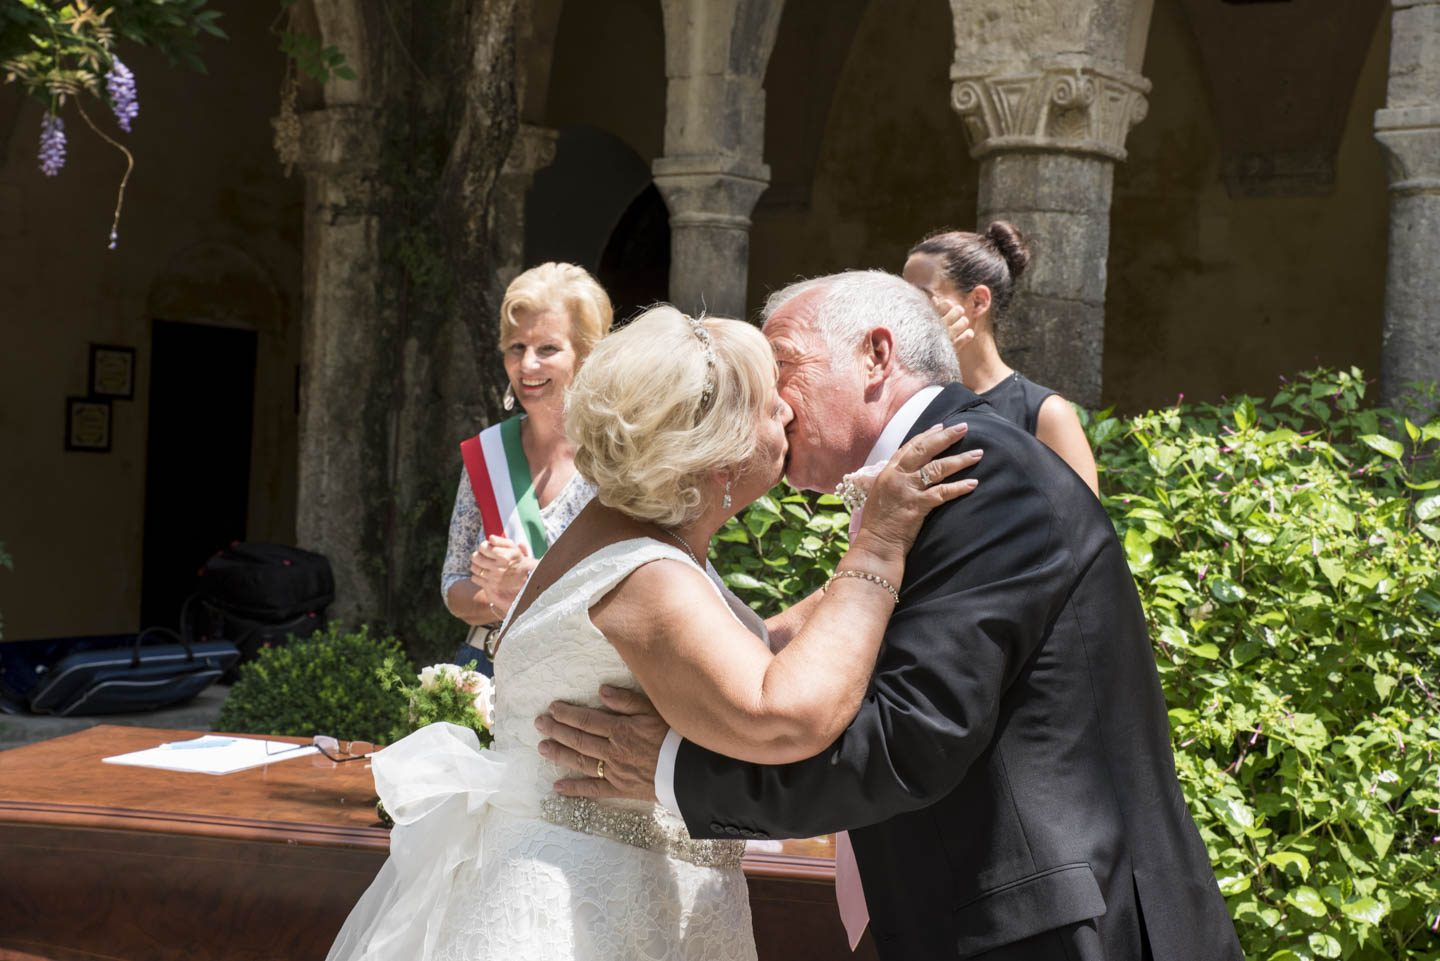 FineArt_Studio_Wedding_Sorrento_Neil&Sue_Chiostro_Bride_Groom_Kiss